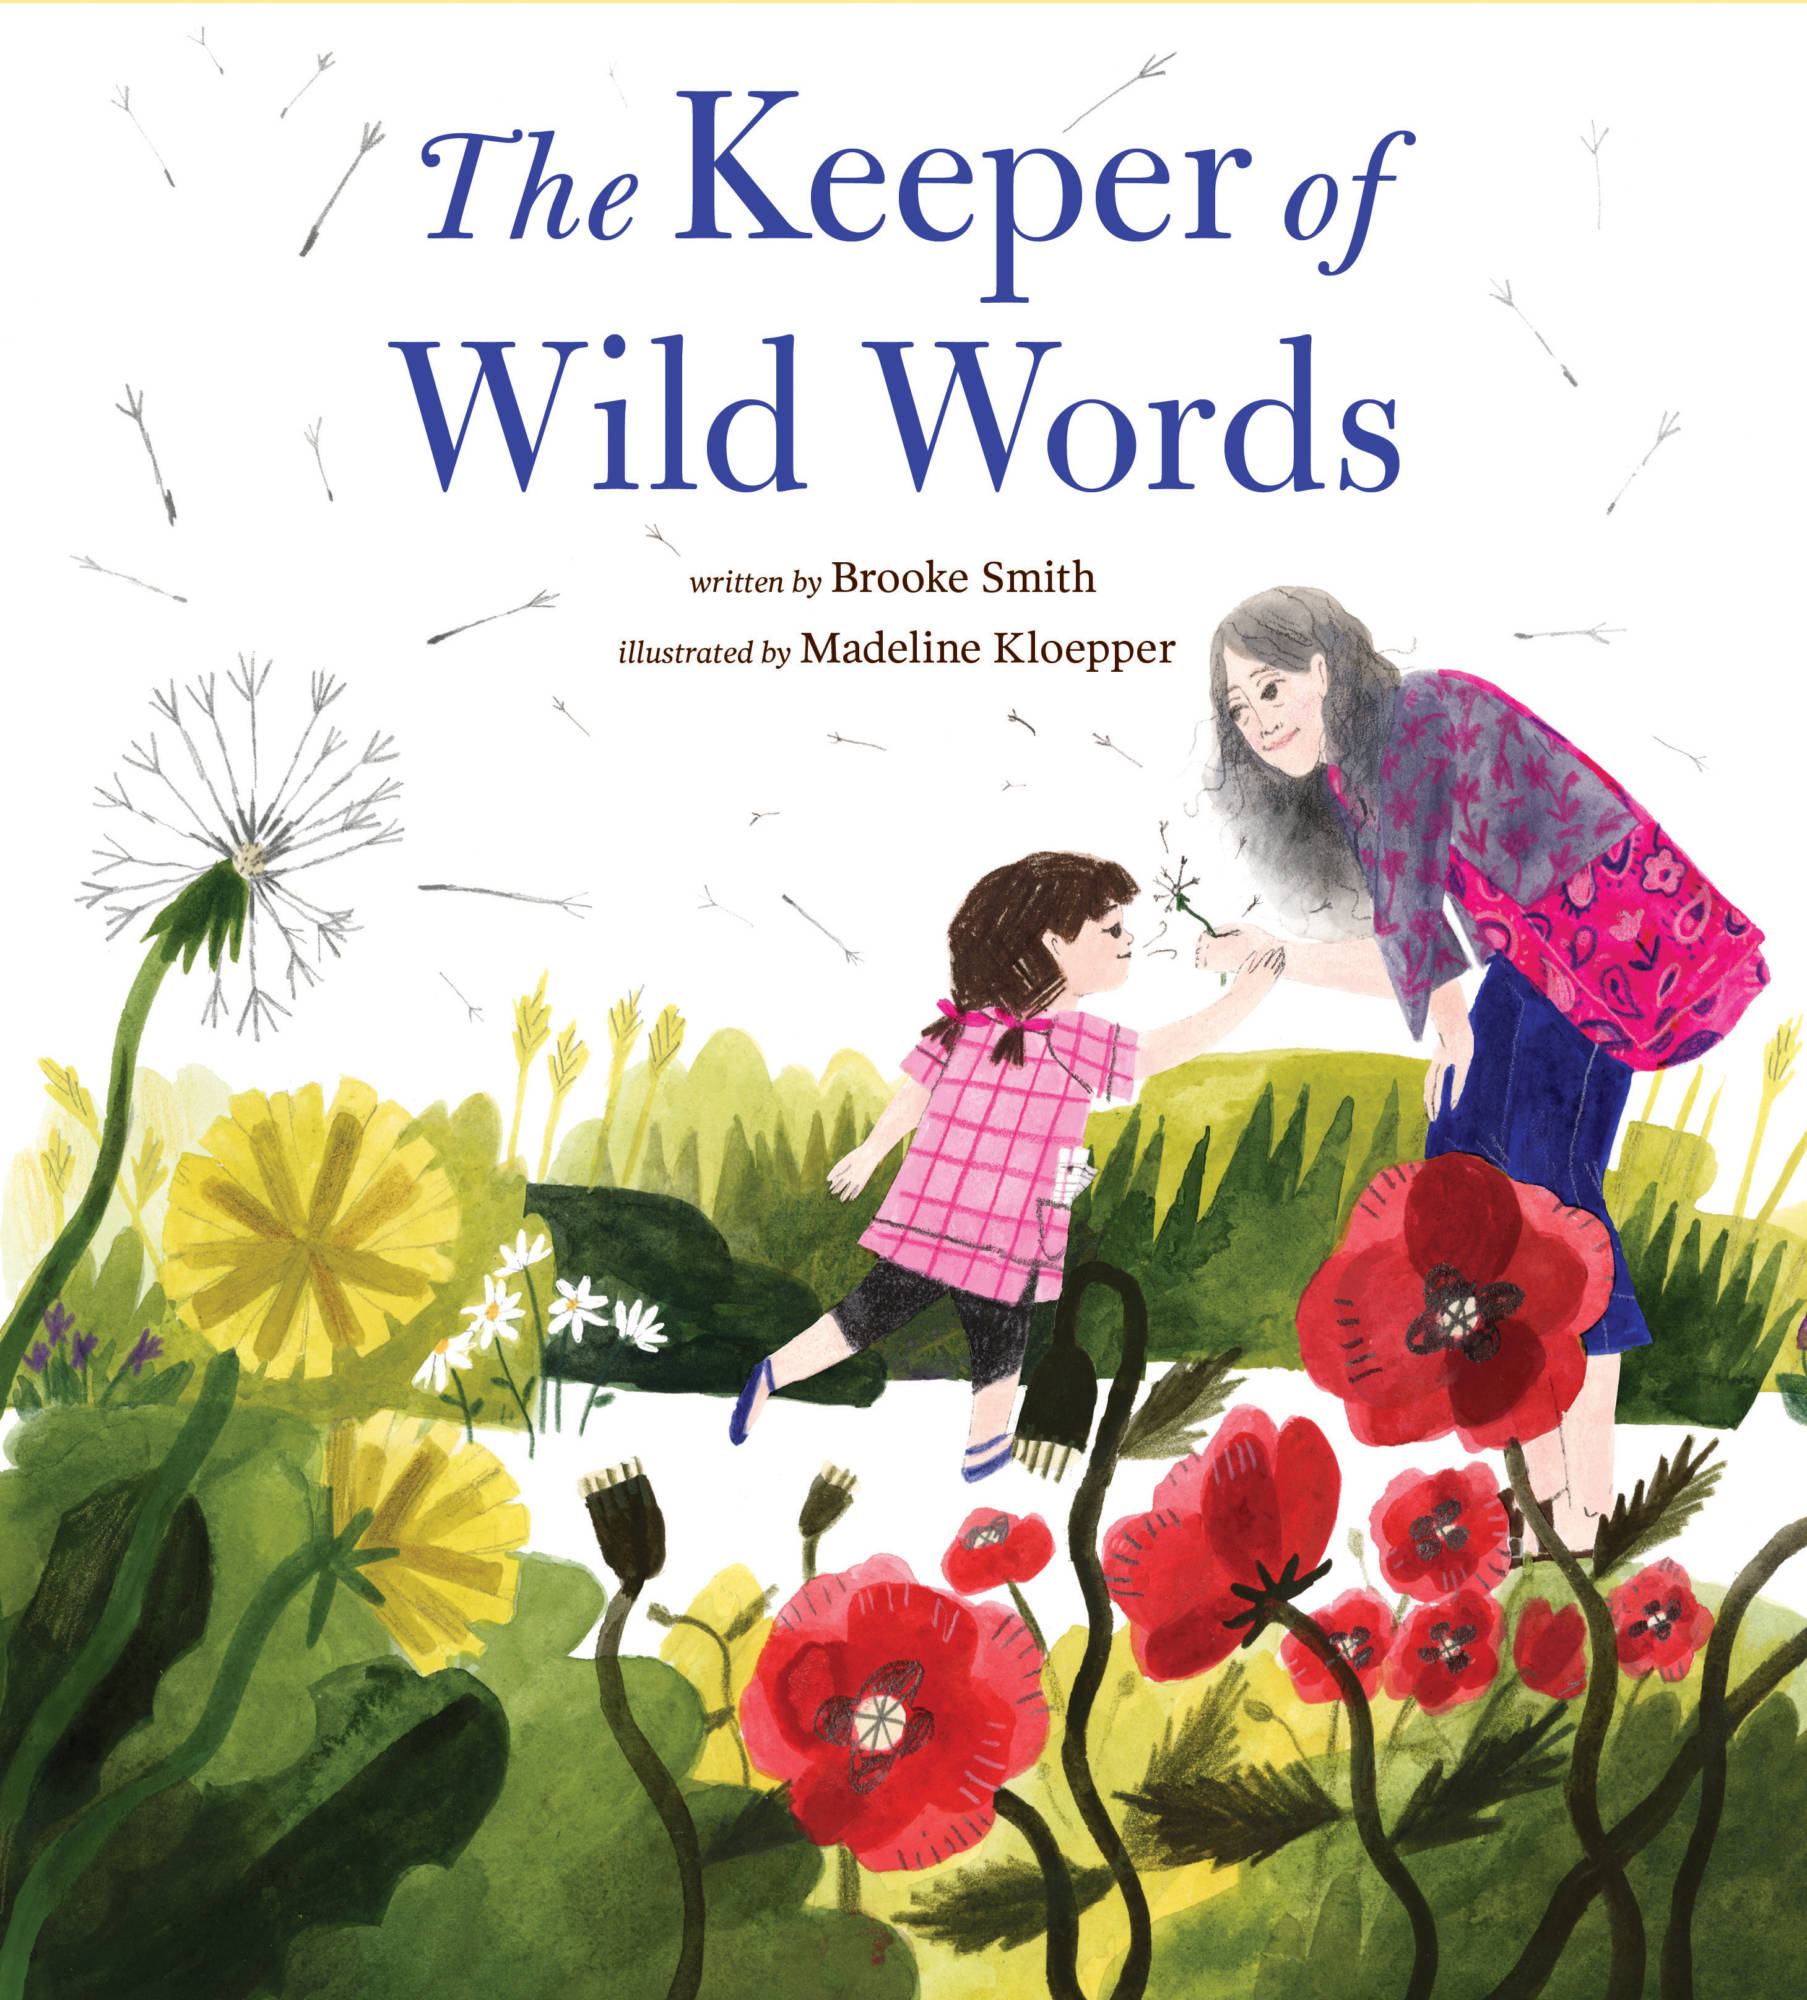 A touching tale of a grandmother and her granddaughter exploring and cherishing the natural world. The keeper of wild words